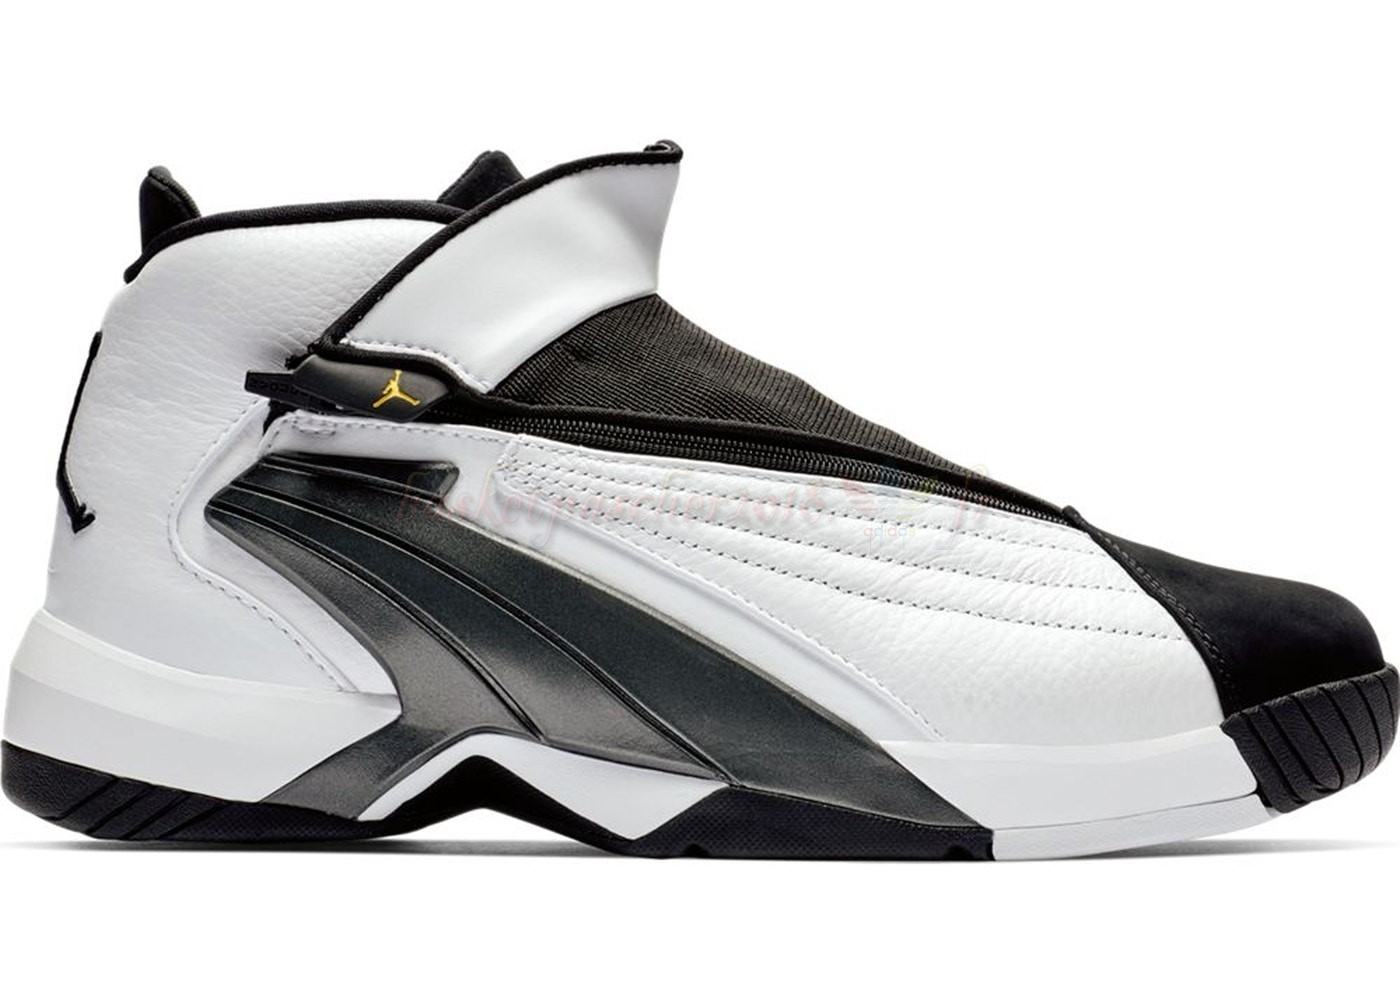 Vente Chaude Chaussures De Basketball Homme Air Jordan Jumpman Swift White Black (at2555-100) Pas Cher